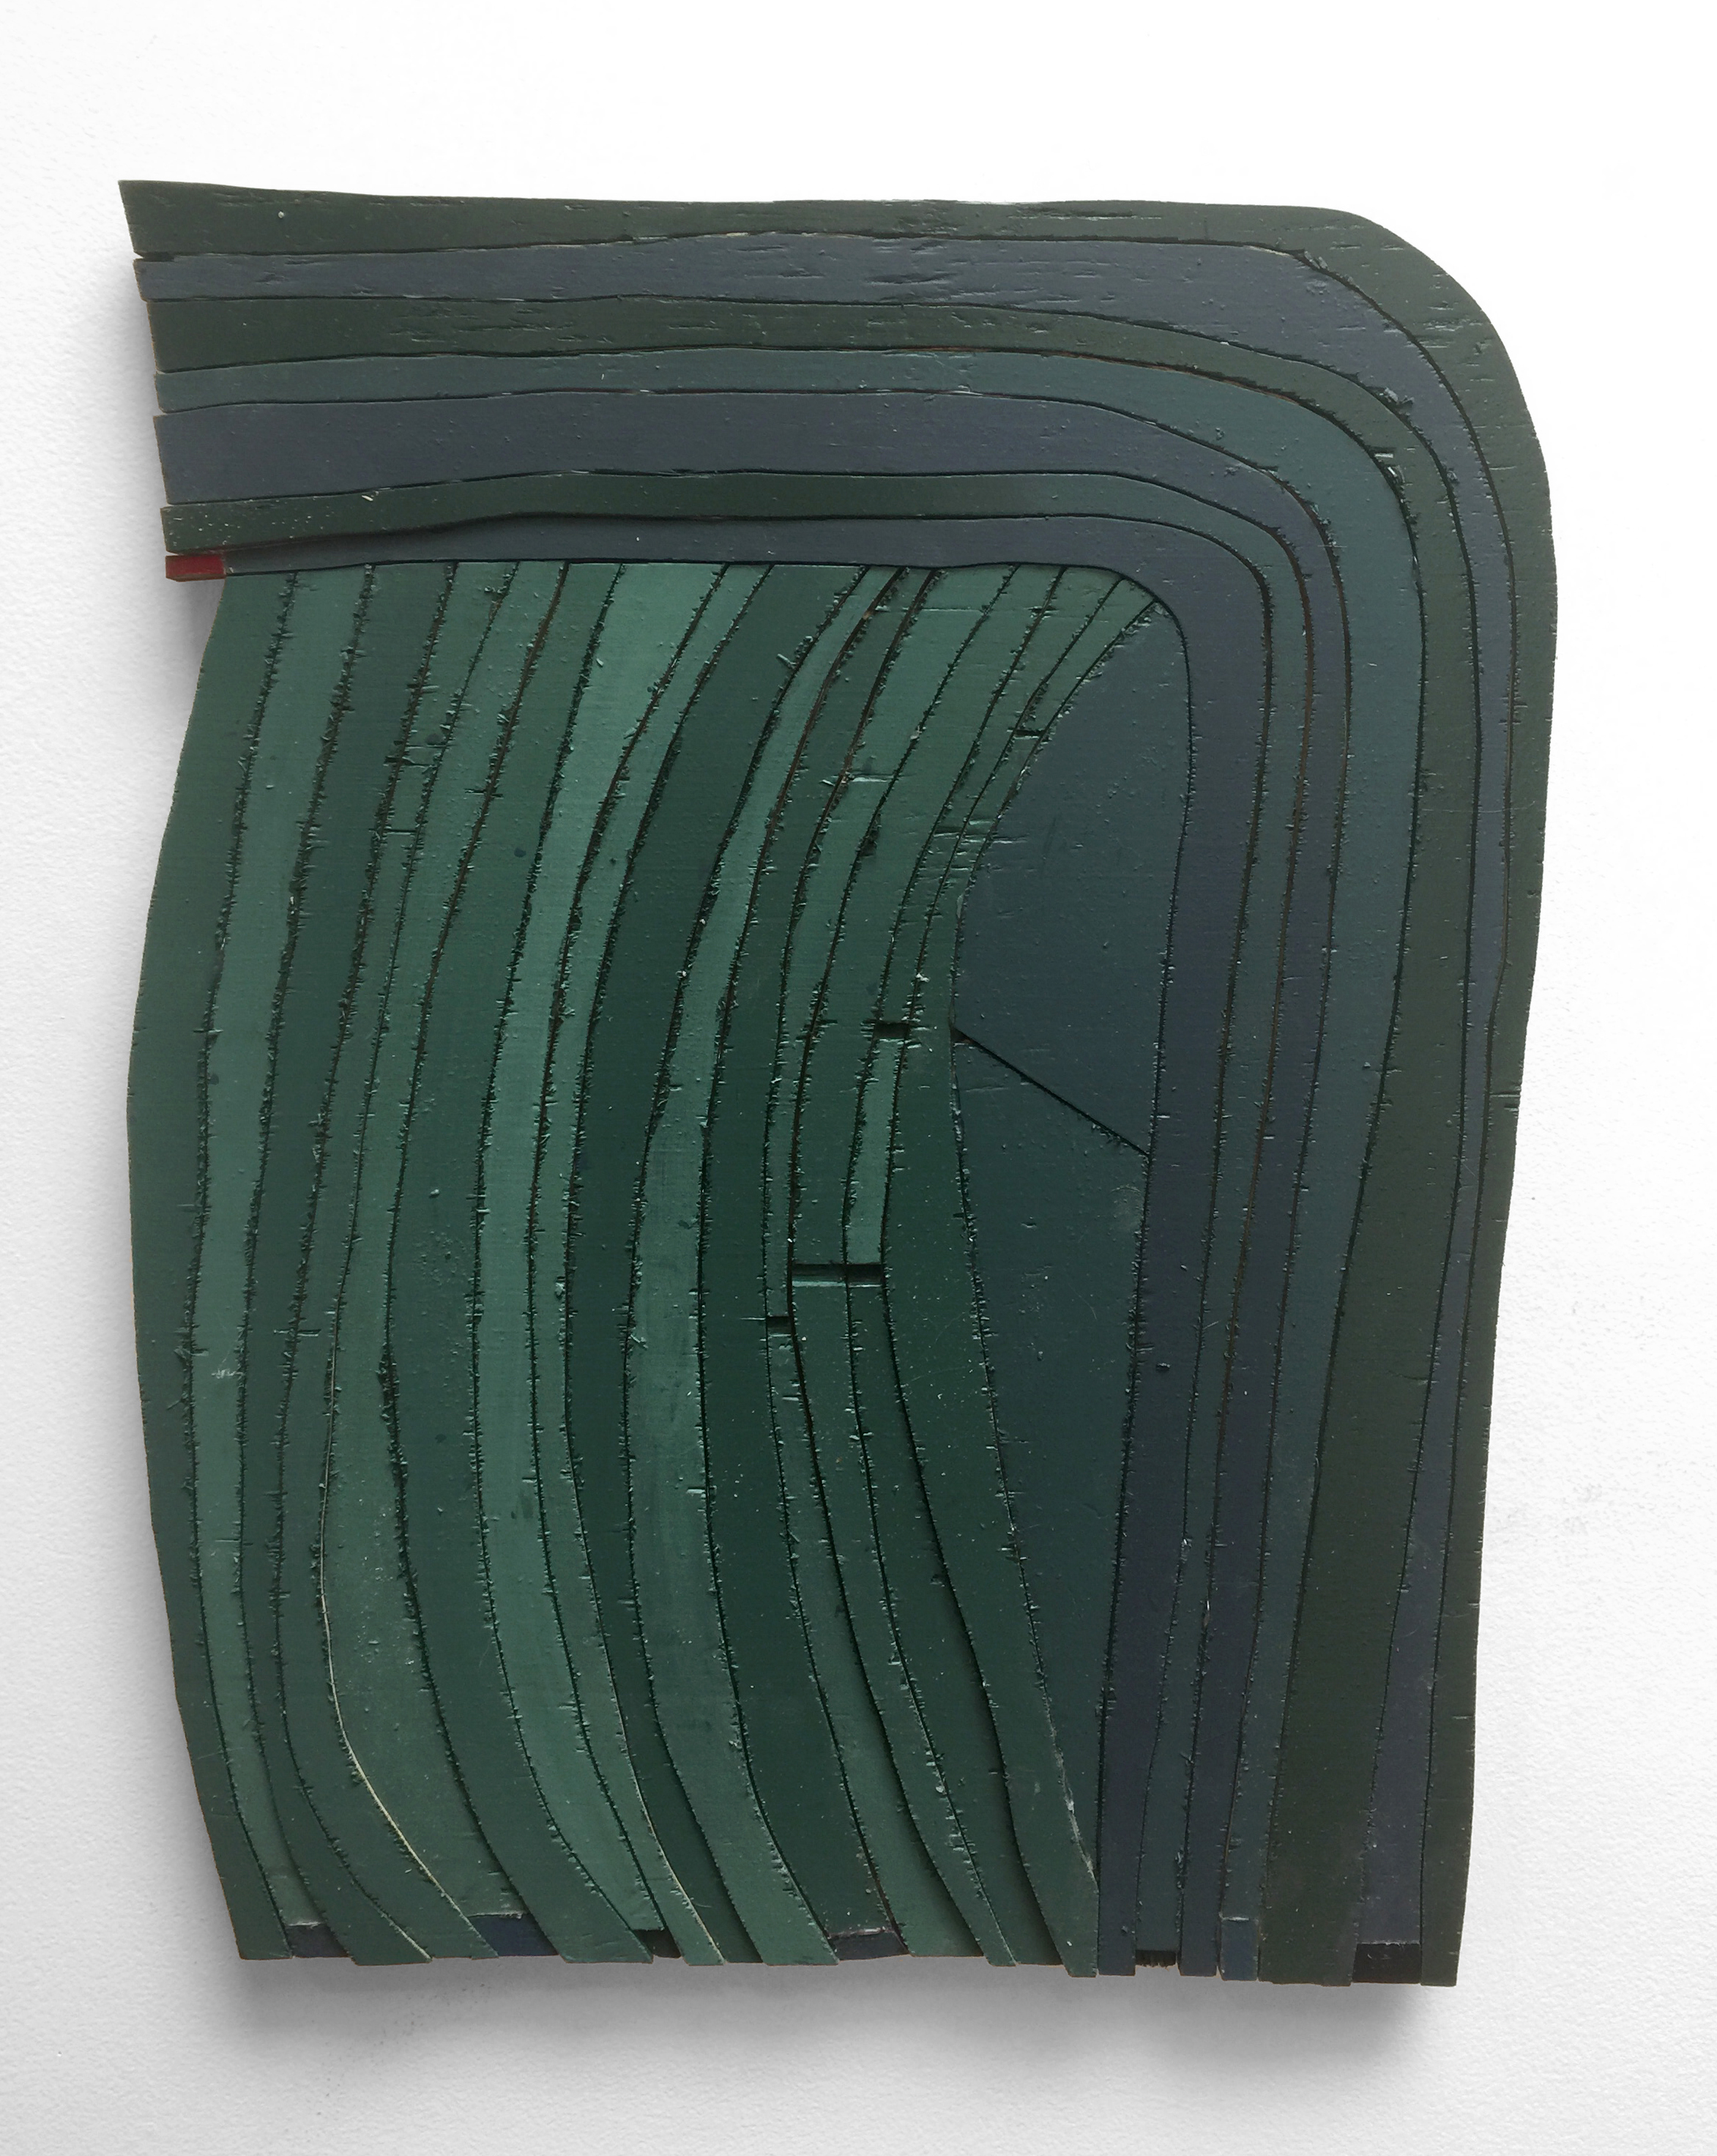 Untitled (Green), 2018